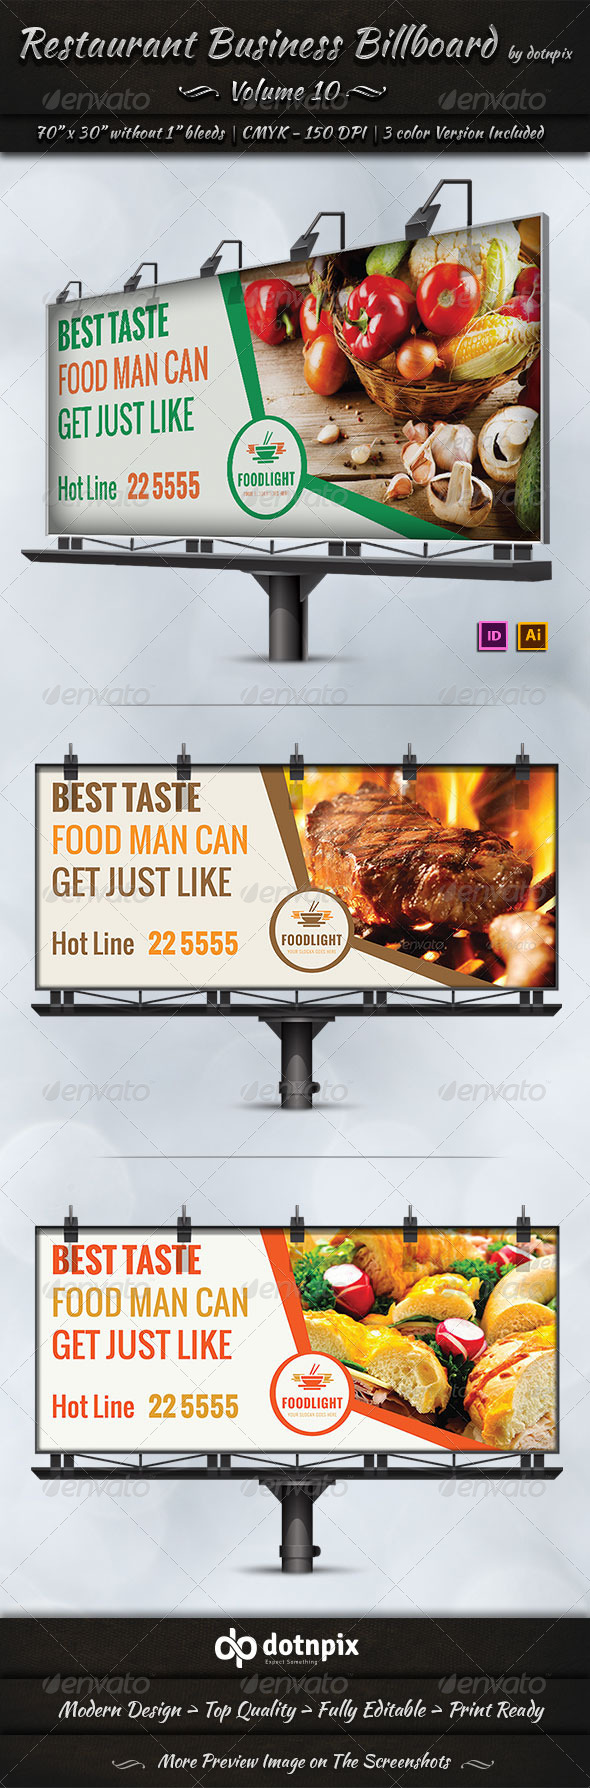 Restaurant Business Billboard Volume 10